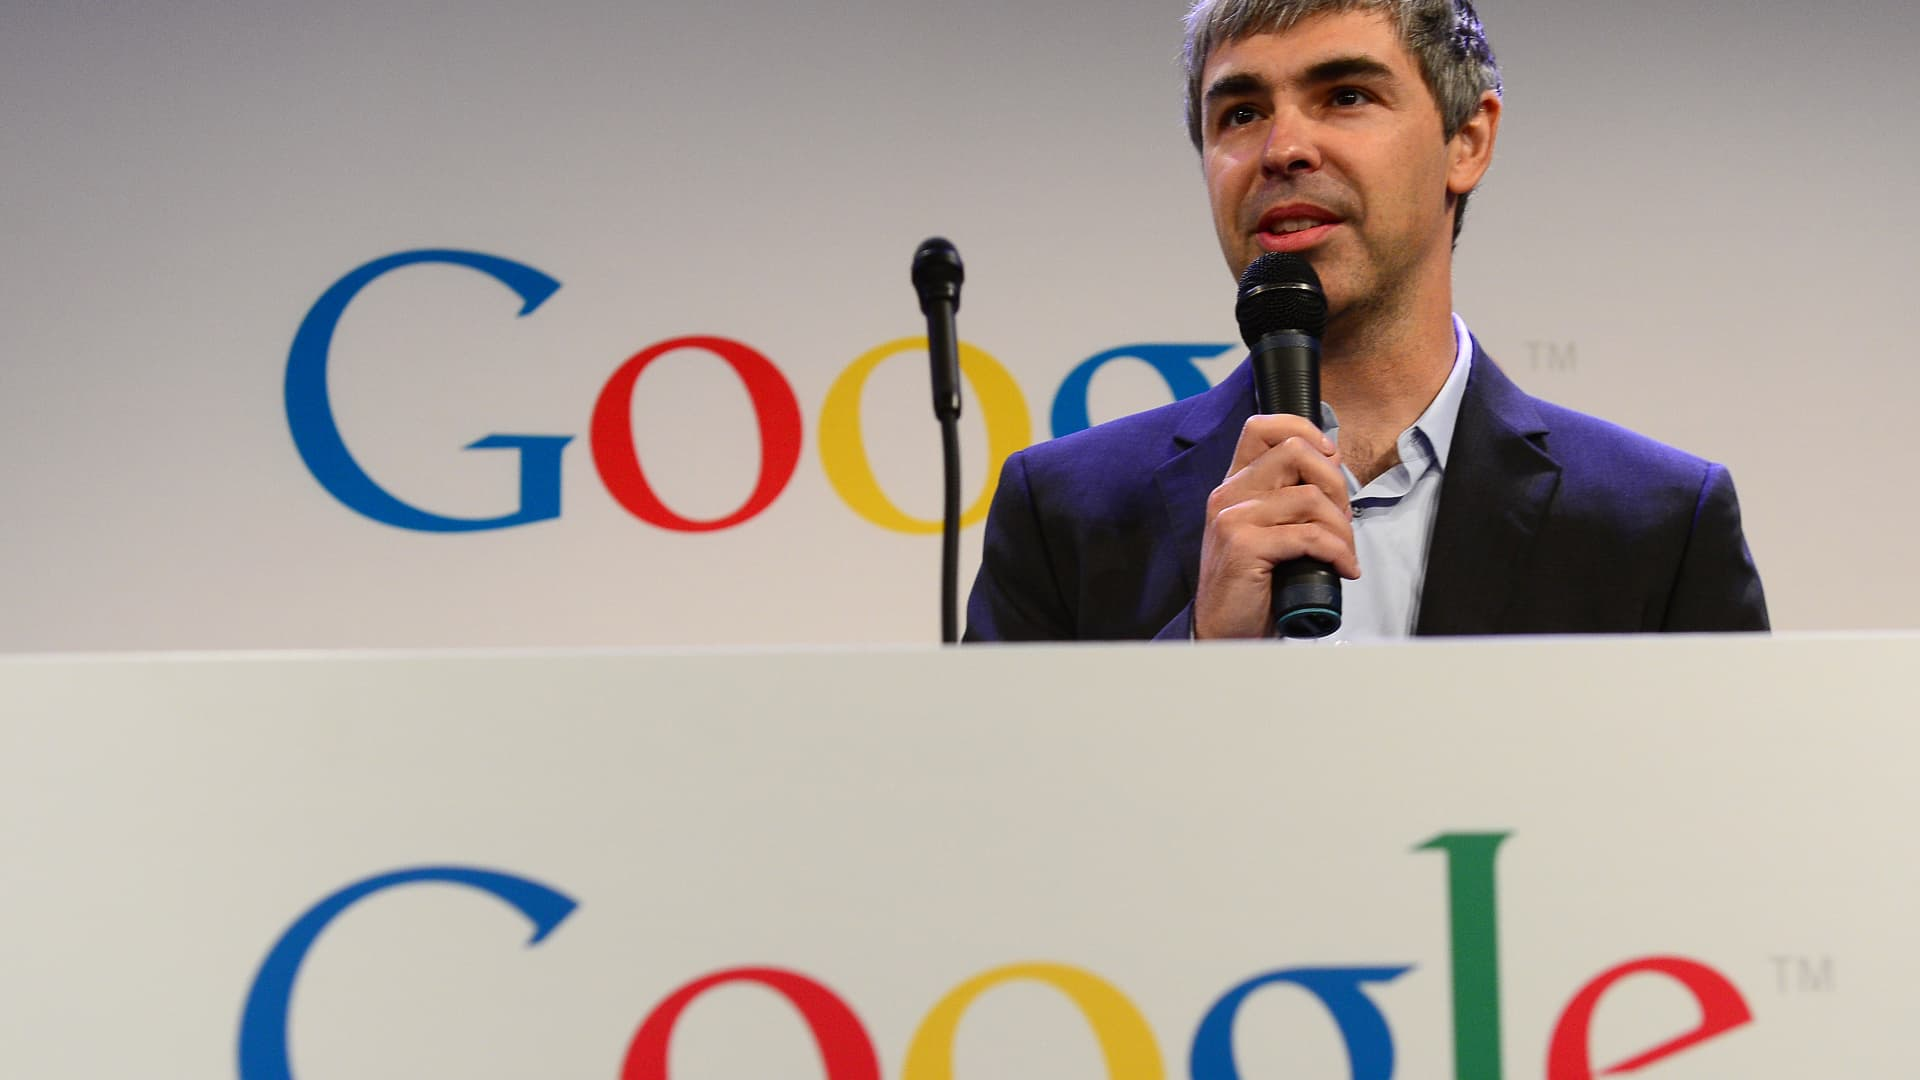 Google CEO Larry Page holds a press annoucement at Google headquarters in New York on May 21, 2012. Google announced that it will allocate 22,000 square feet of its New York headquarters to CornellNYC Tech university, free of charge for five years and six month or until the university completes its campus in New York.